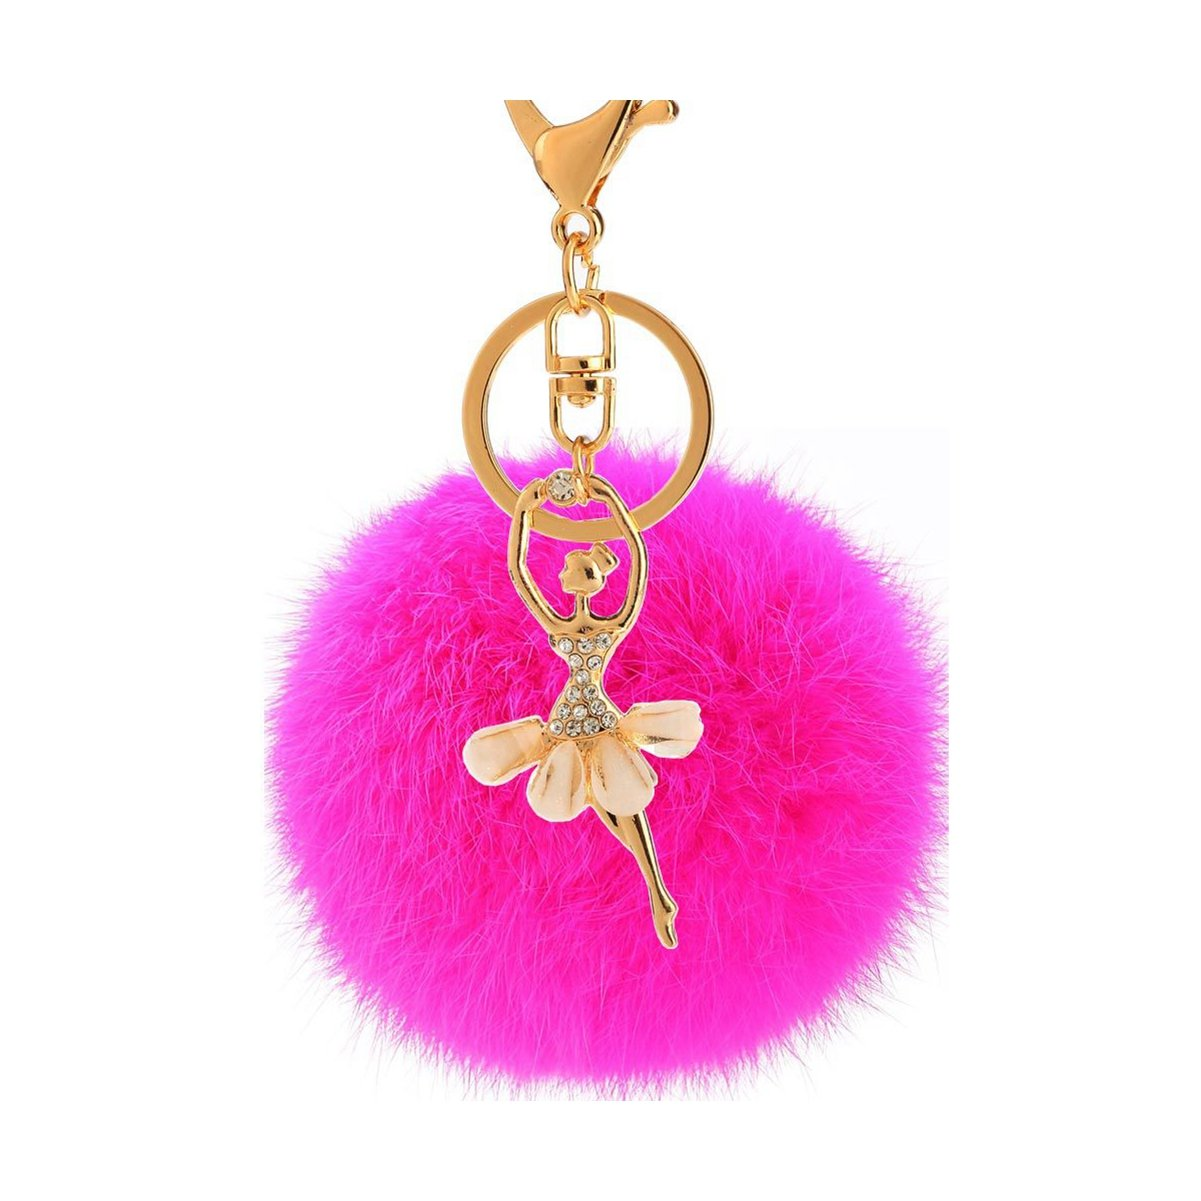 elegantstunning Dancing girl Rabbit Hair Furry Ball Key Chain Decoration DS-20180723-PS-138